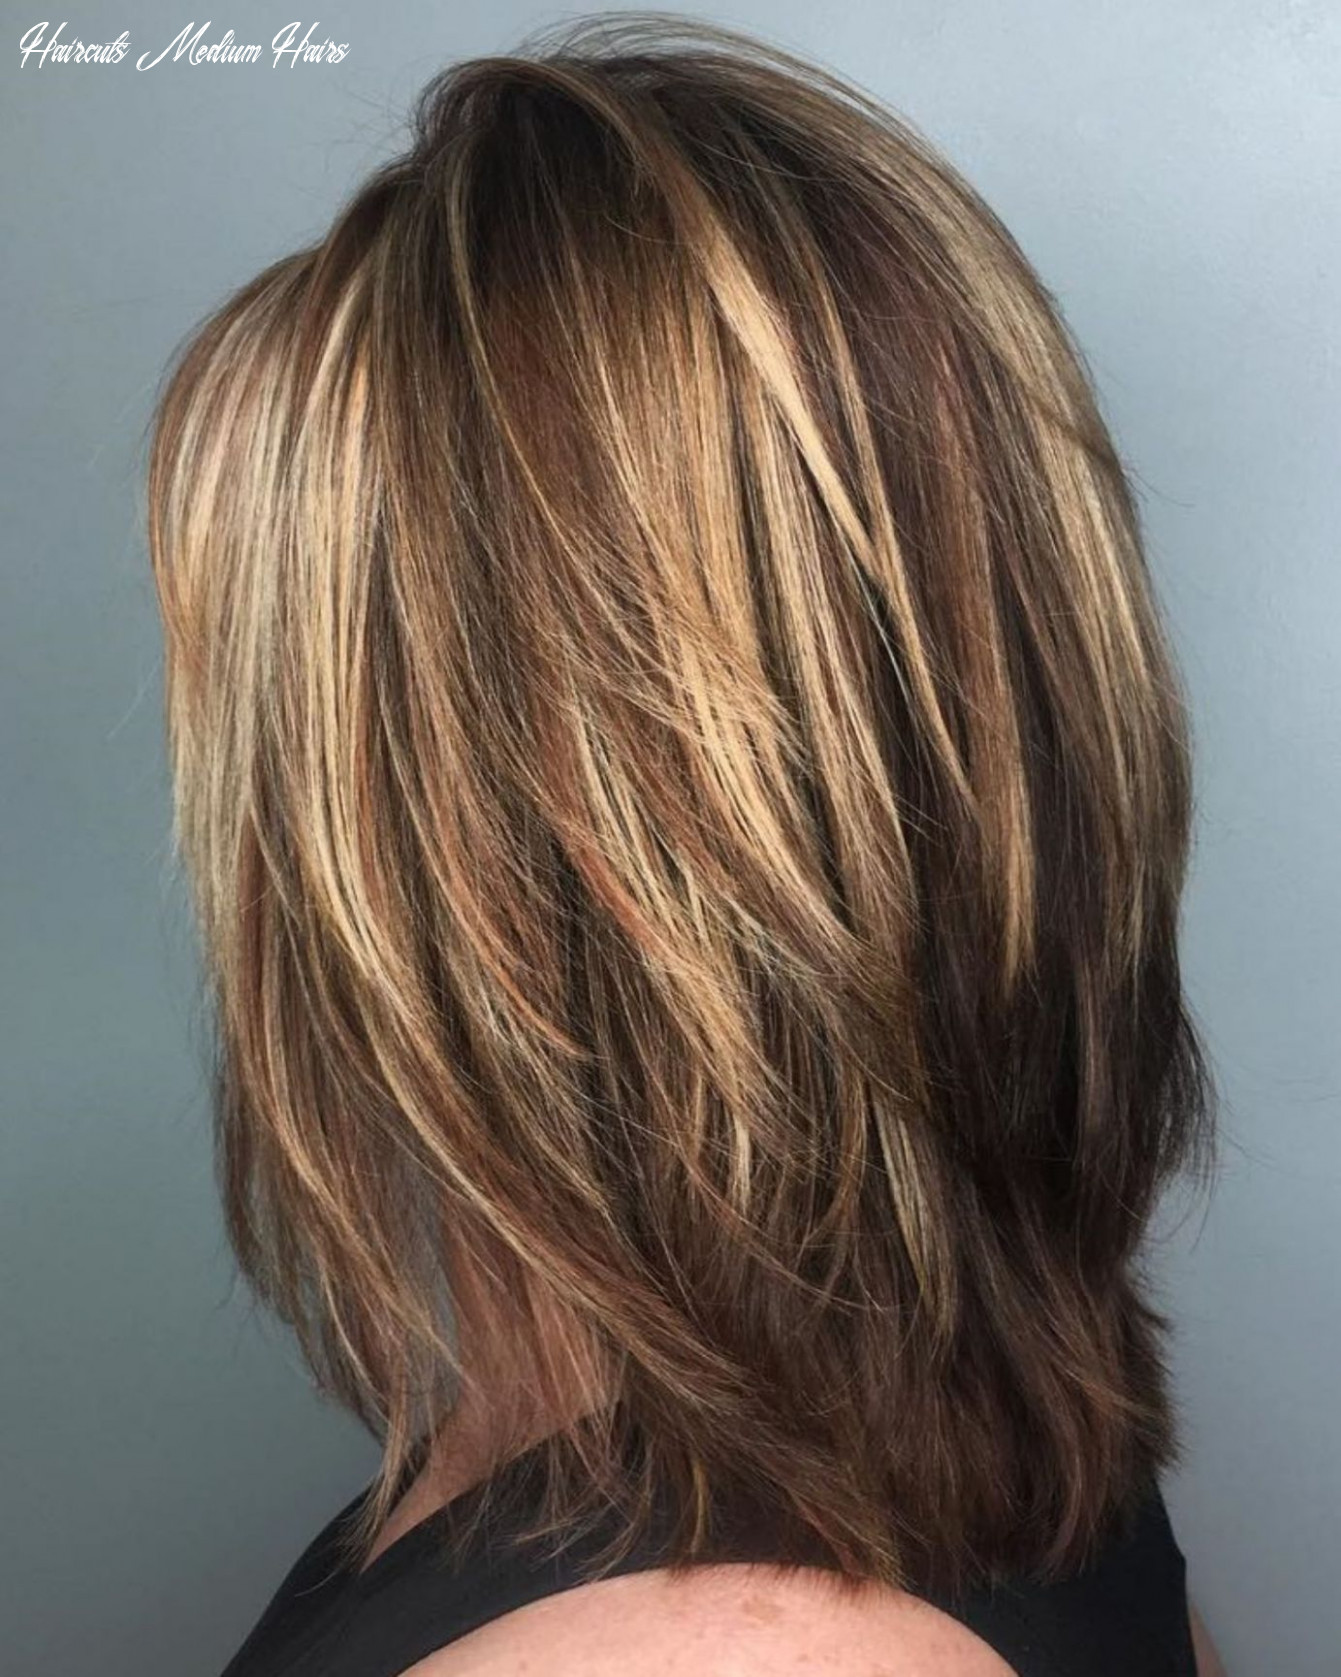 8 brightest medium layered haircuts to light you up | medium